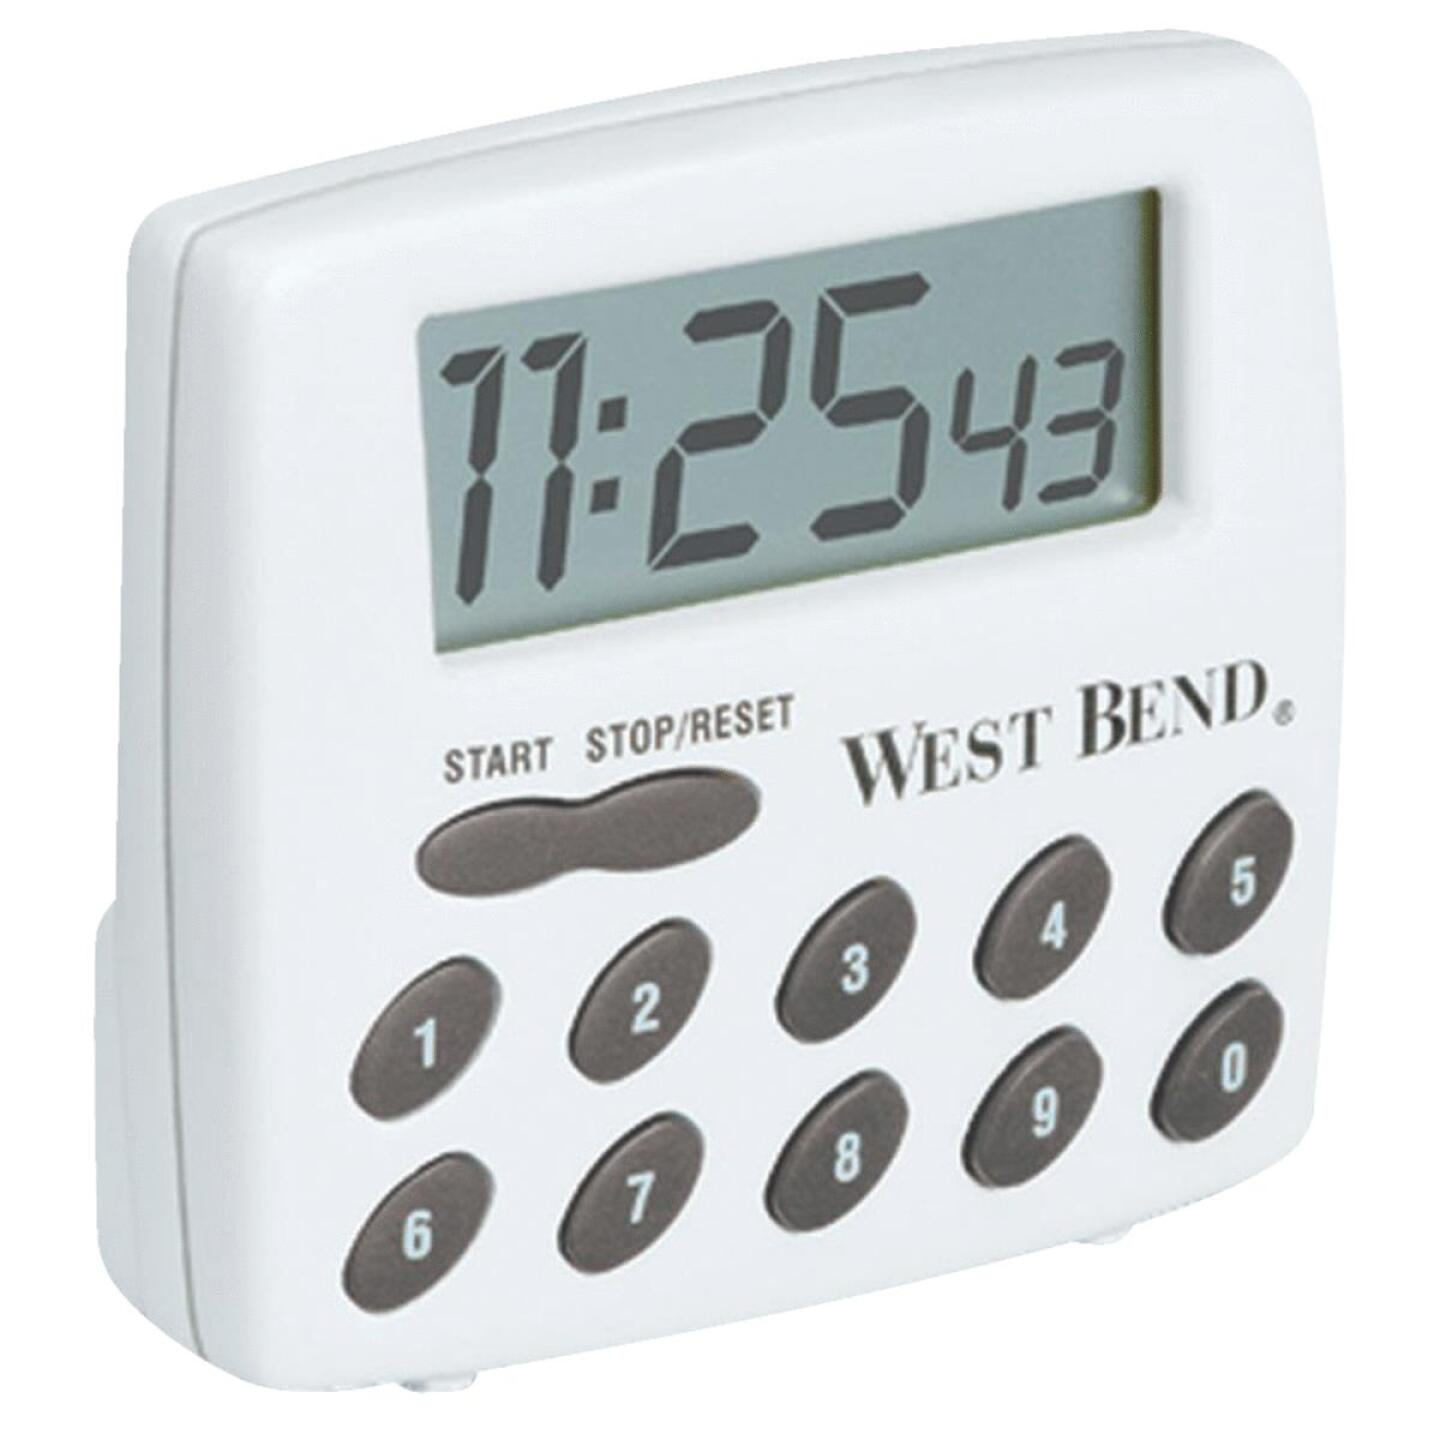 West Bend Electronic Timer Image 1